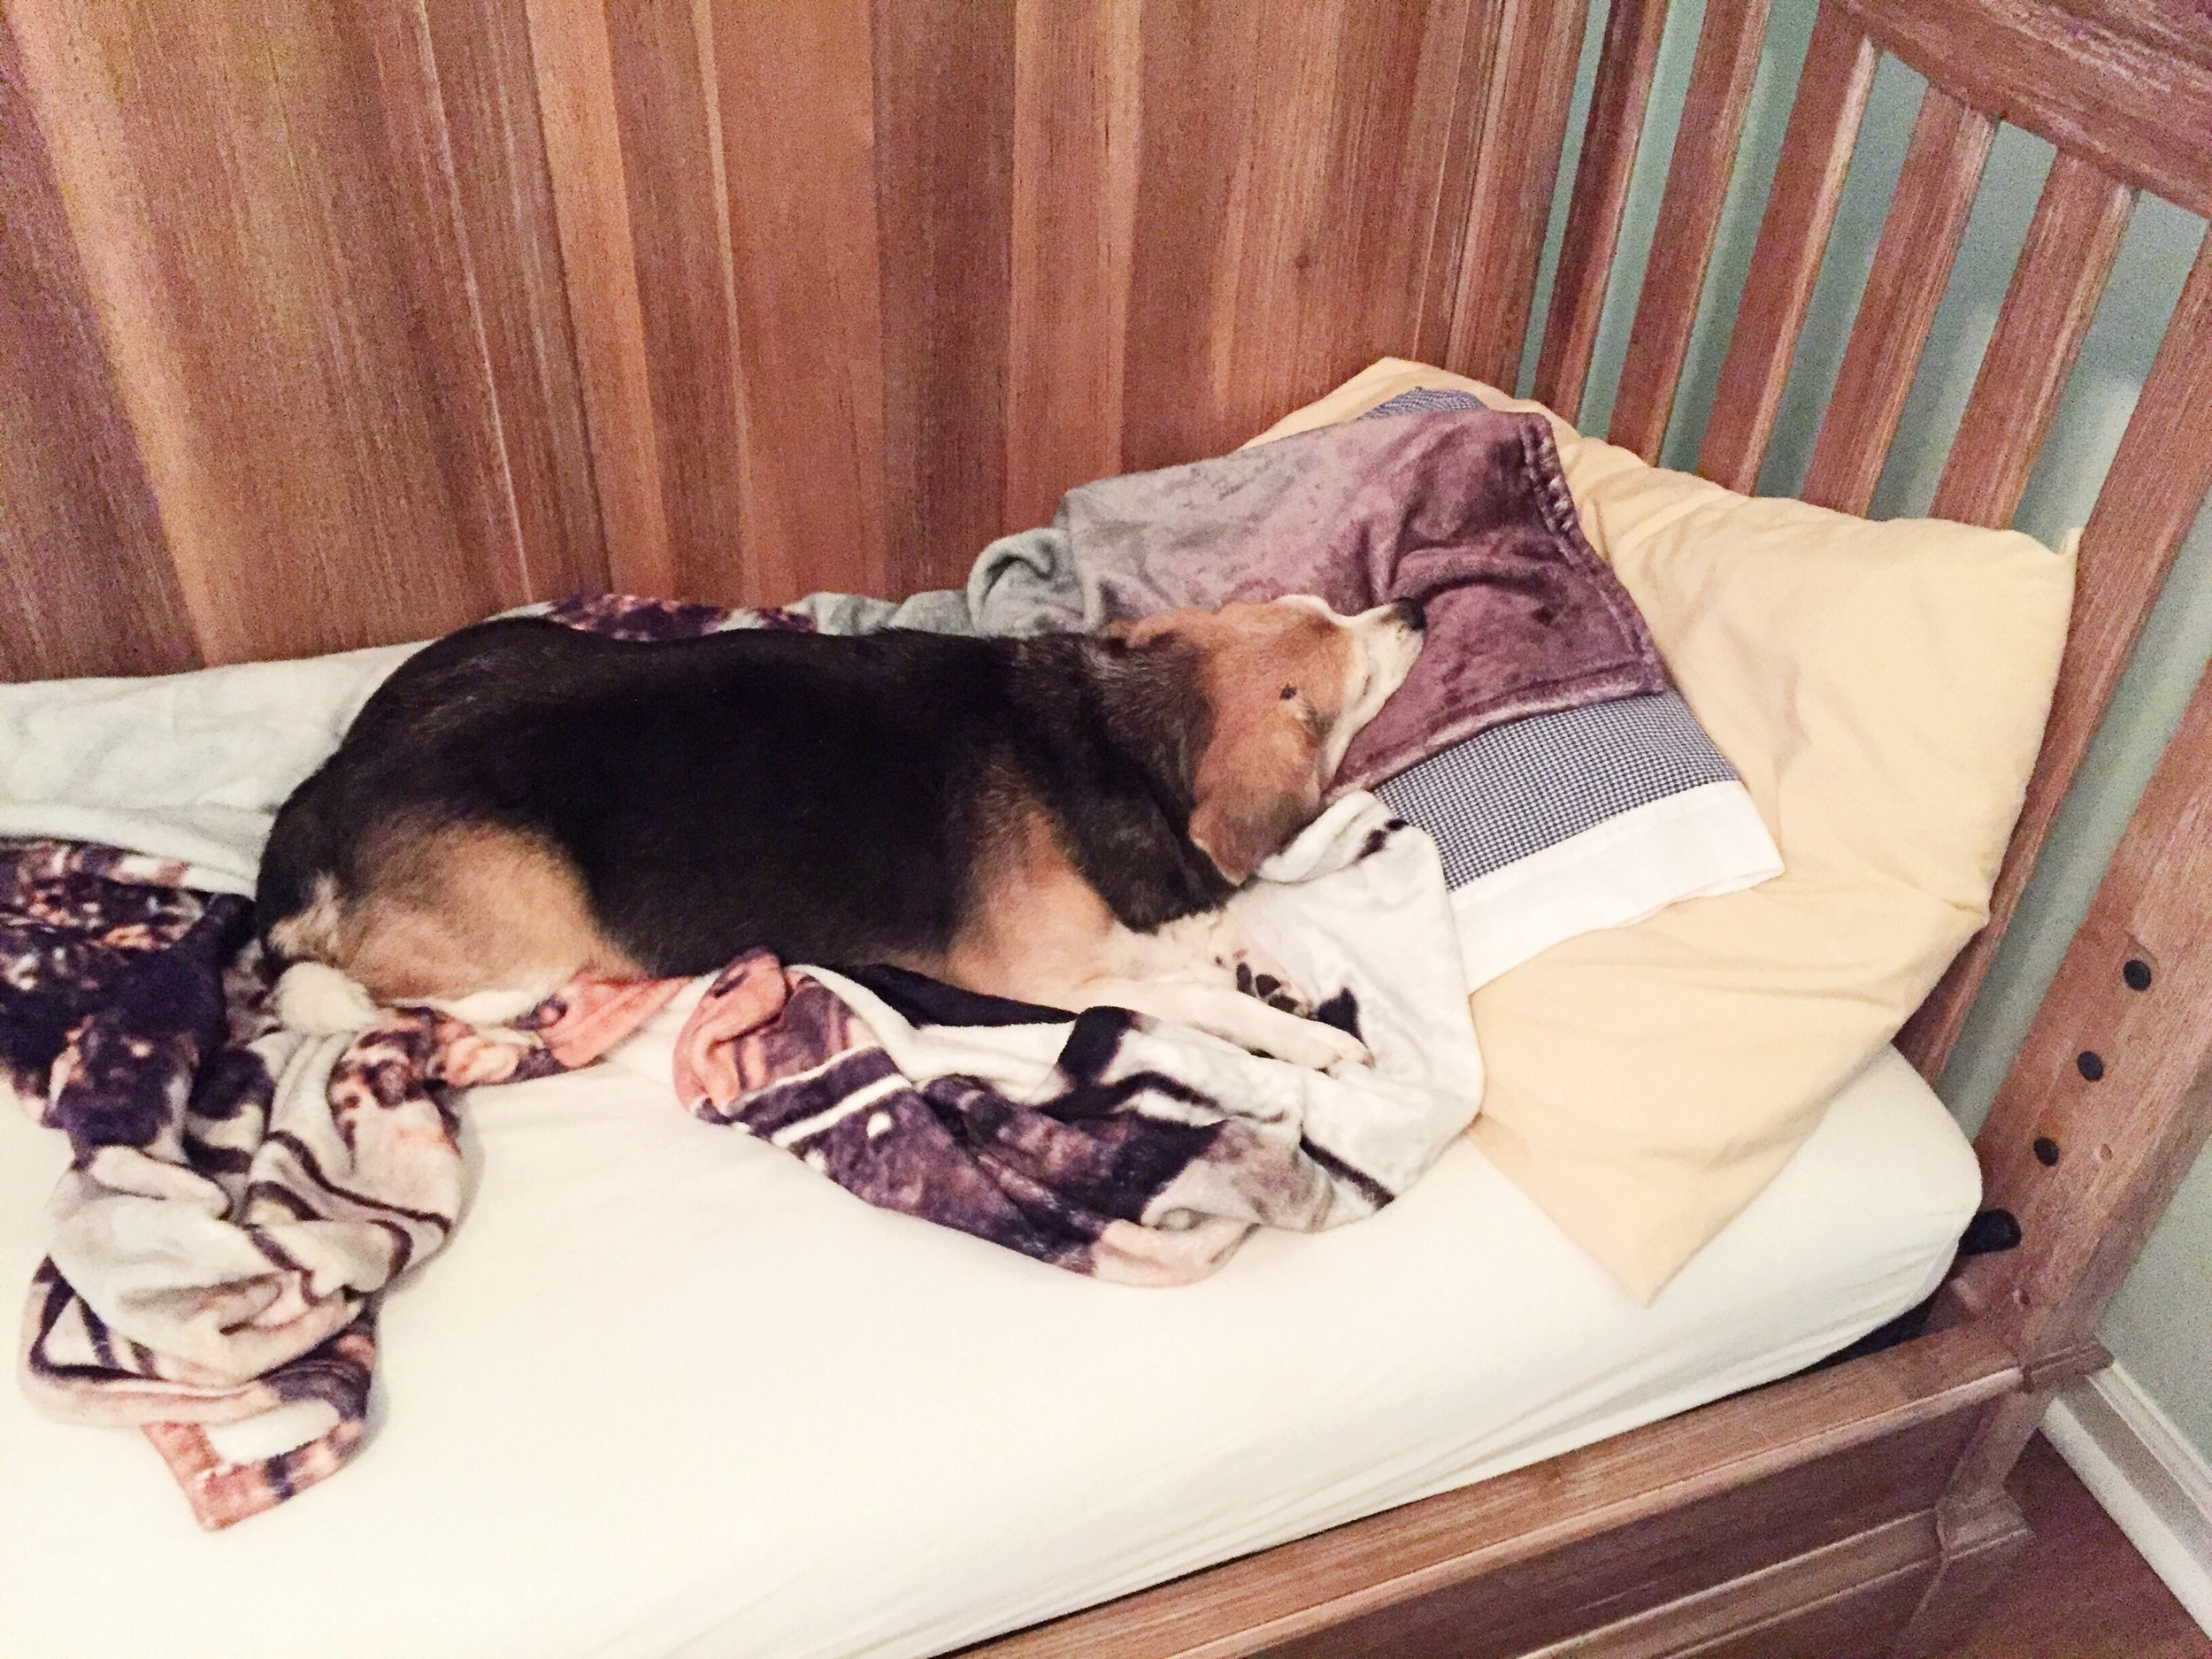 One of the dogs decided she liked B's new bed and decided to take a snooze in it (before we put the rails up)